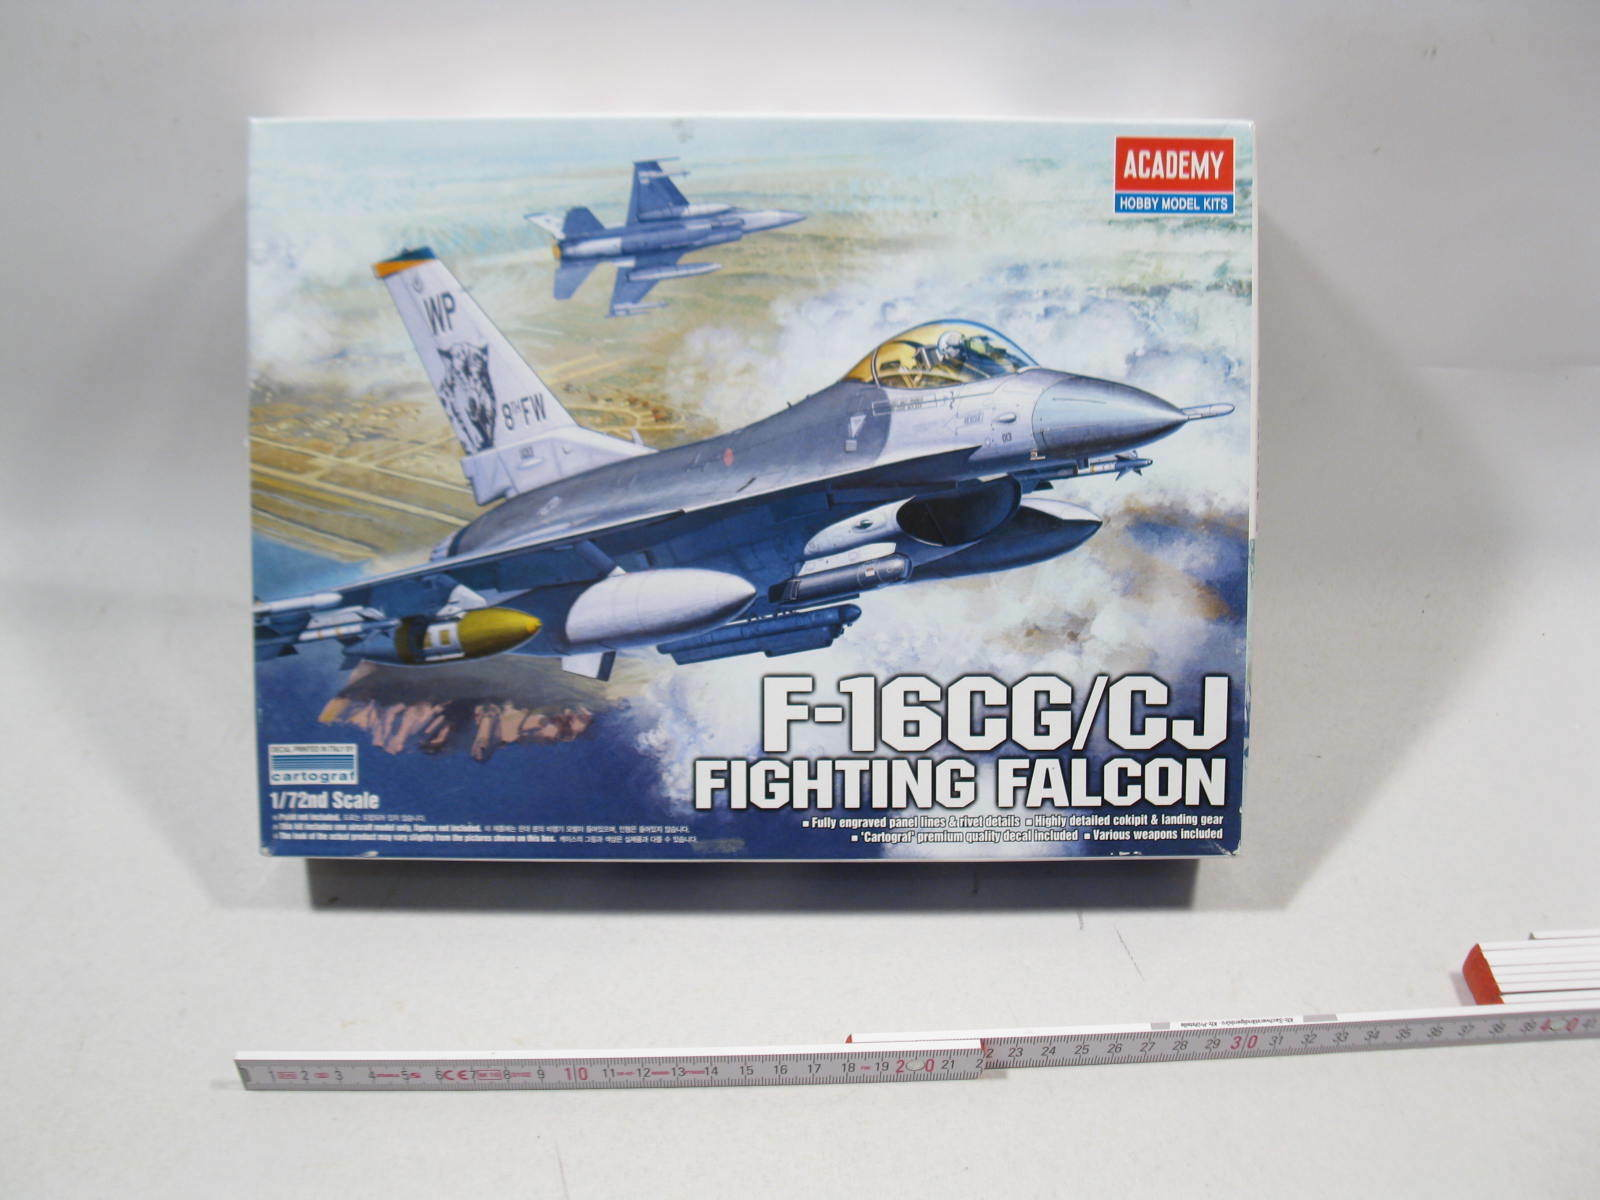 Academy 12415  F16 CG CJ fighting falcon 1 72 sealed in Box mb8125